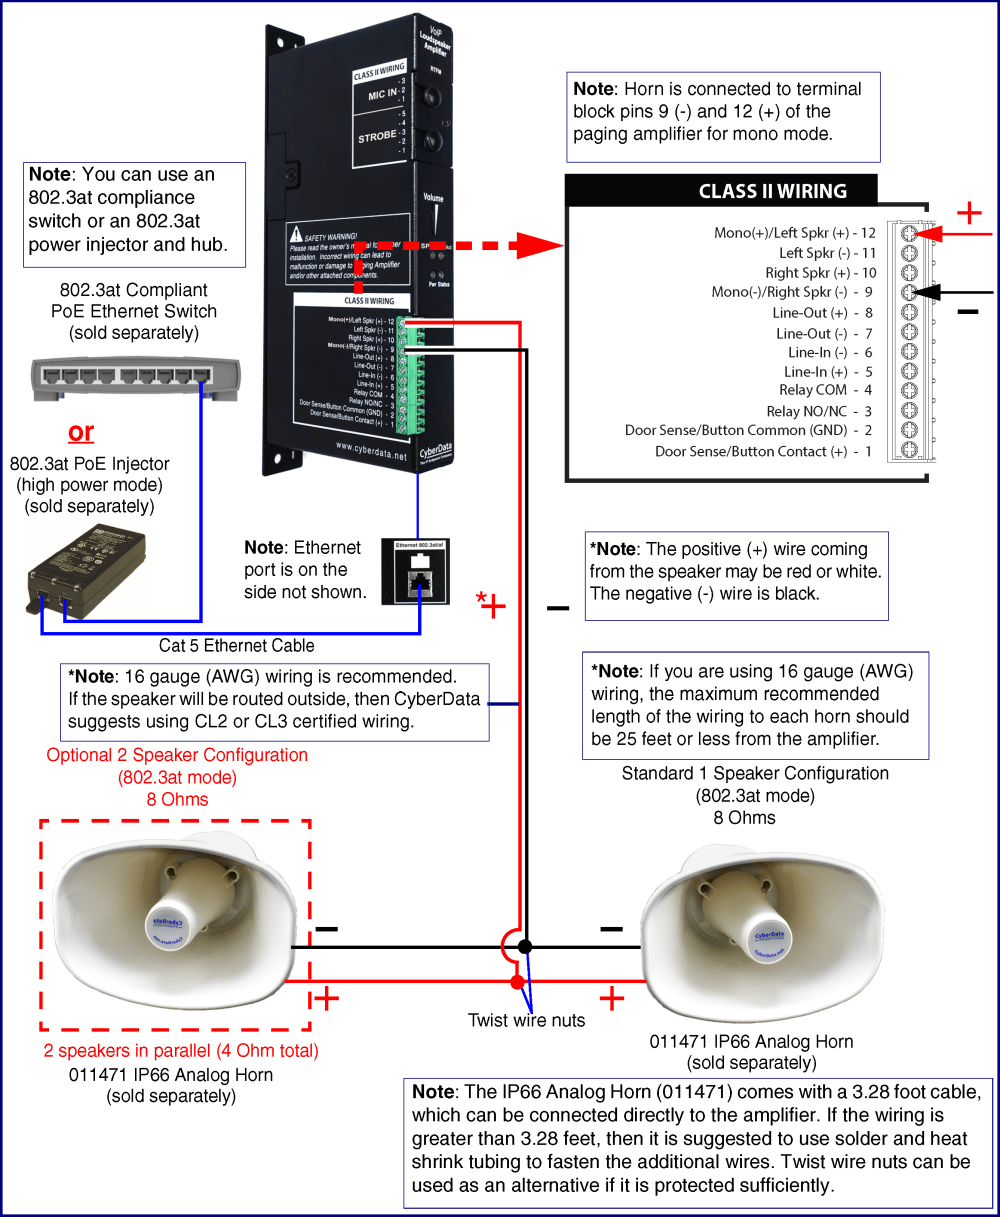 medium resolution of high power mode two speakers